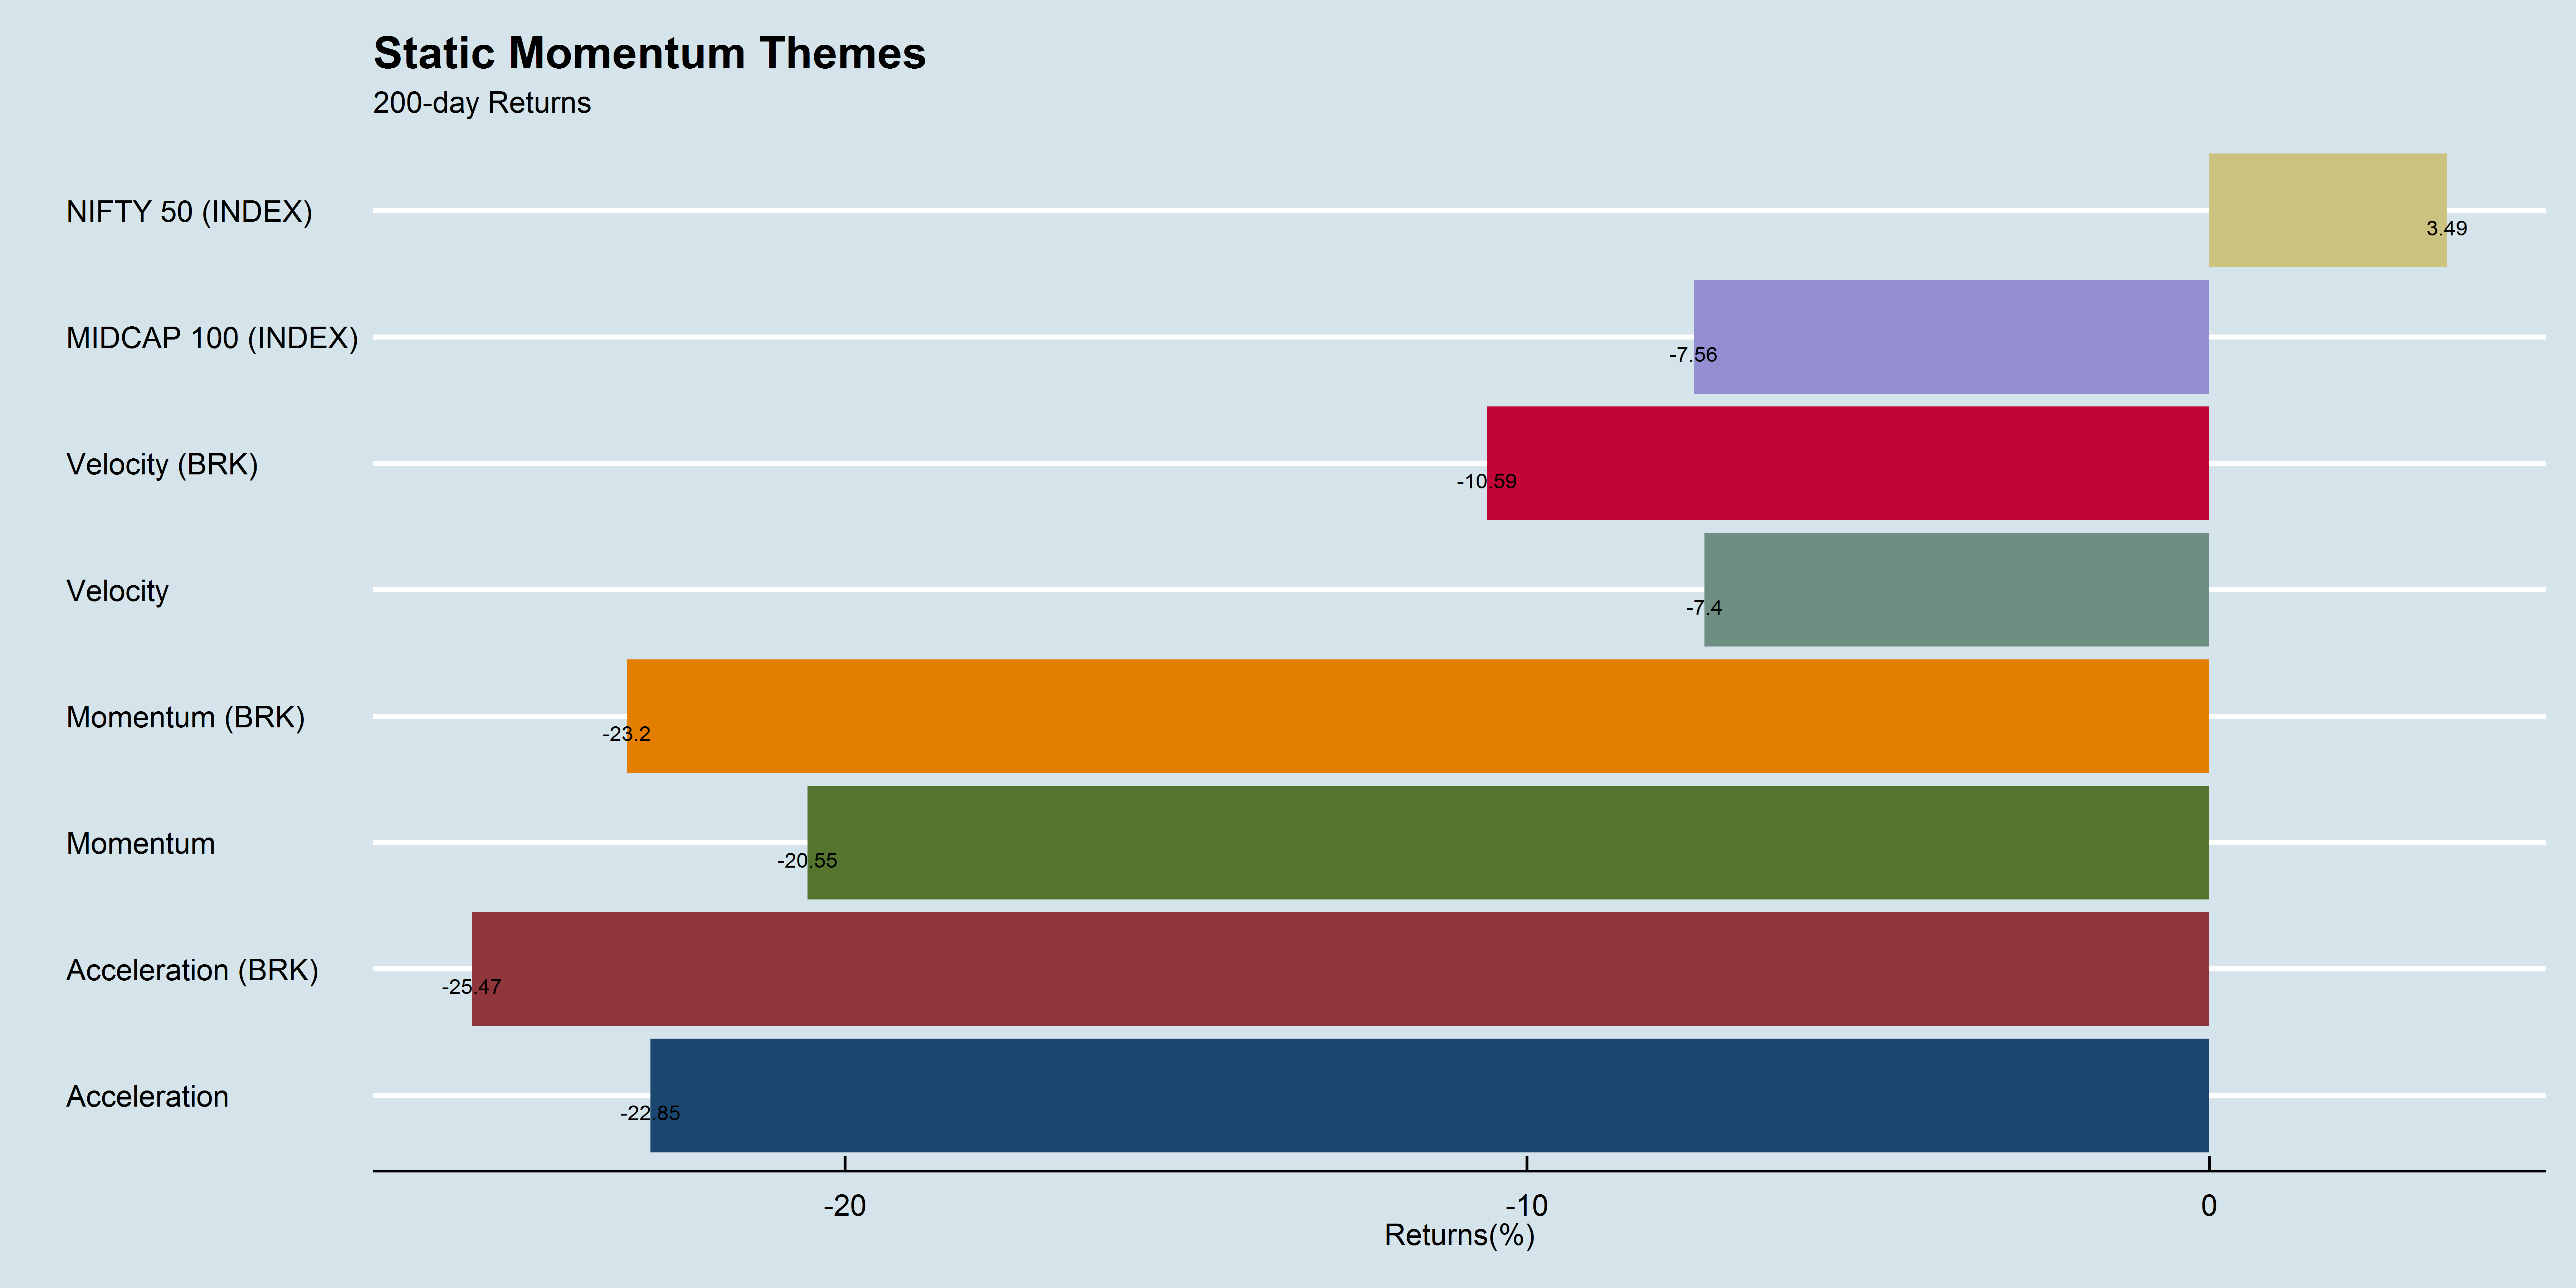 Static Momentum Themes 200-day performance